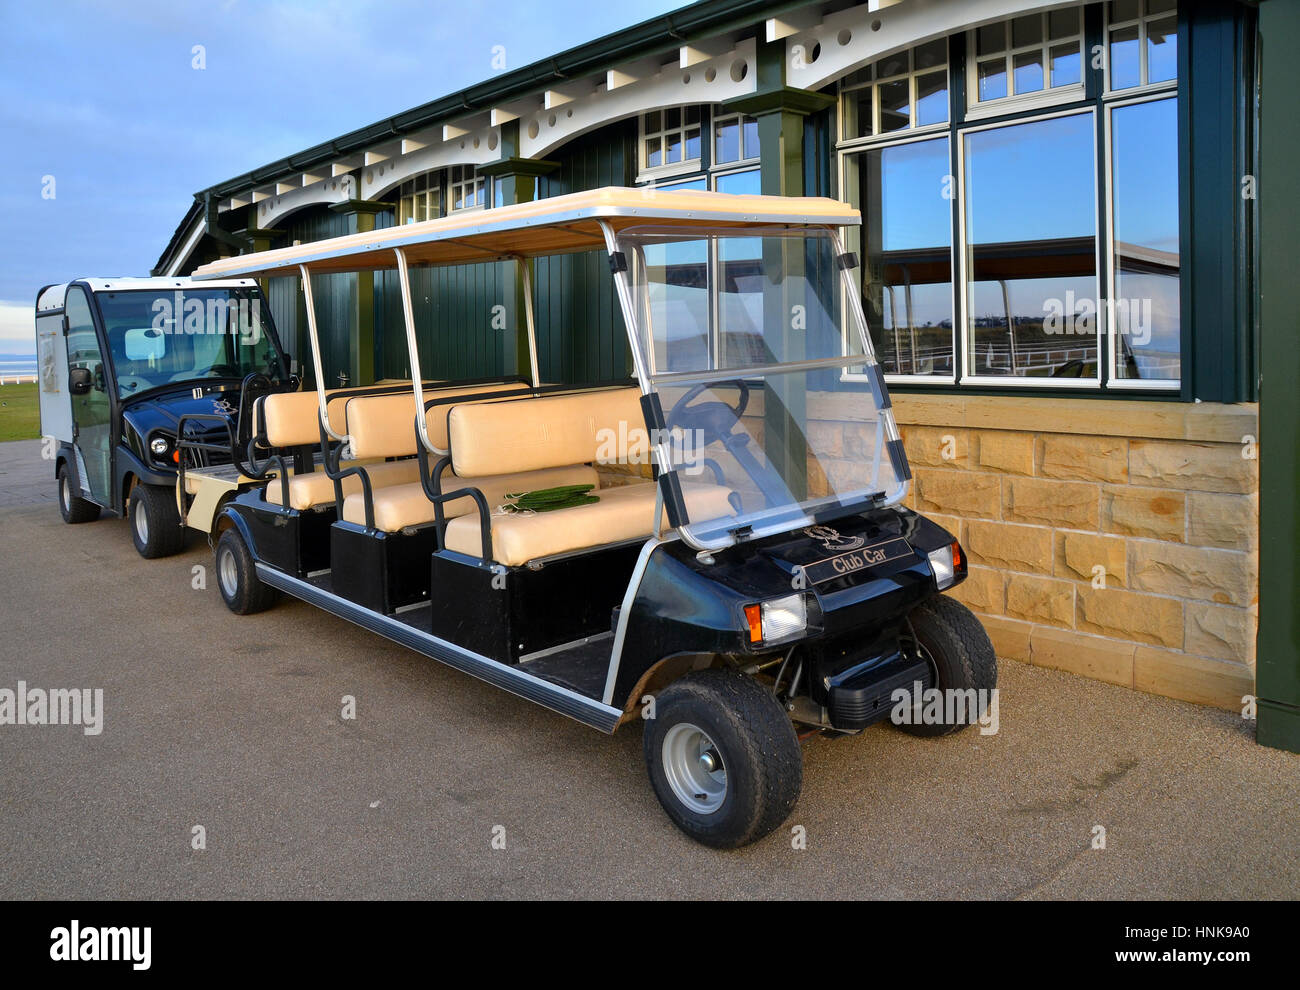 multi seater  club cars of the old course of St Andrews gold club in Fife, Scotland  parked infront of a section - Stock Image